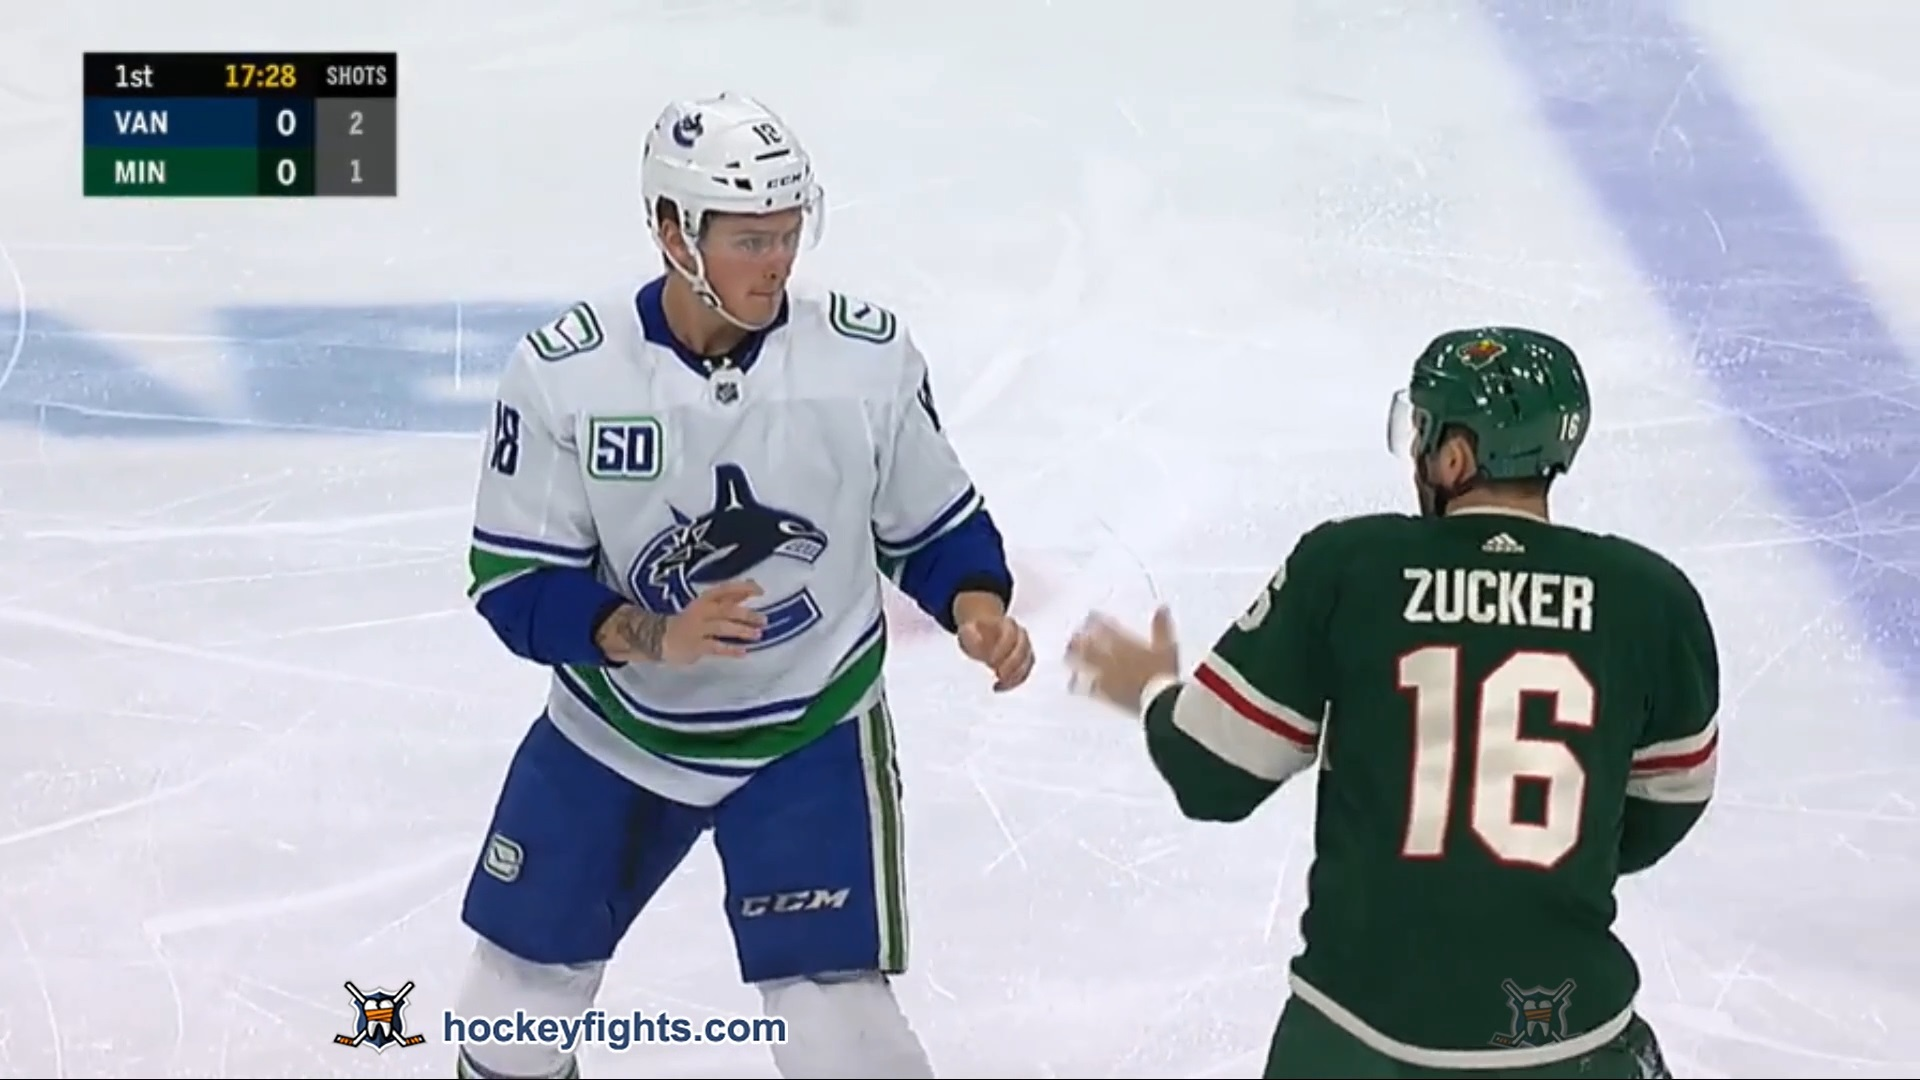 Jake Virtanen vs Jason Zucker